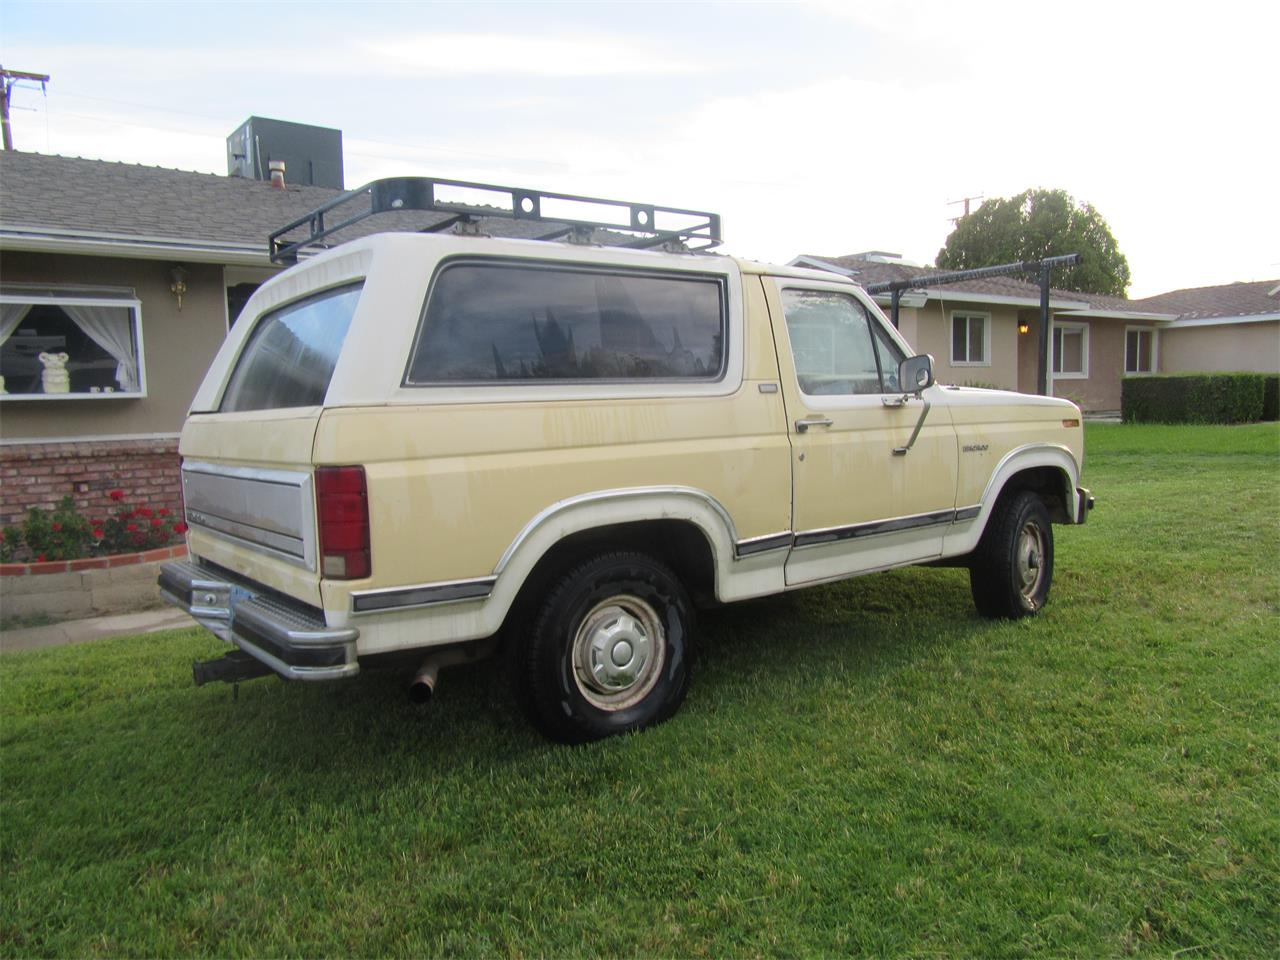 Large Picture of 1981 Ford Bronco located in California - $8,000.00 Offered by a Private Seller - N5DO